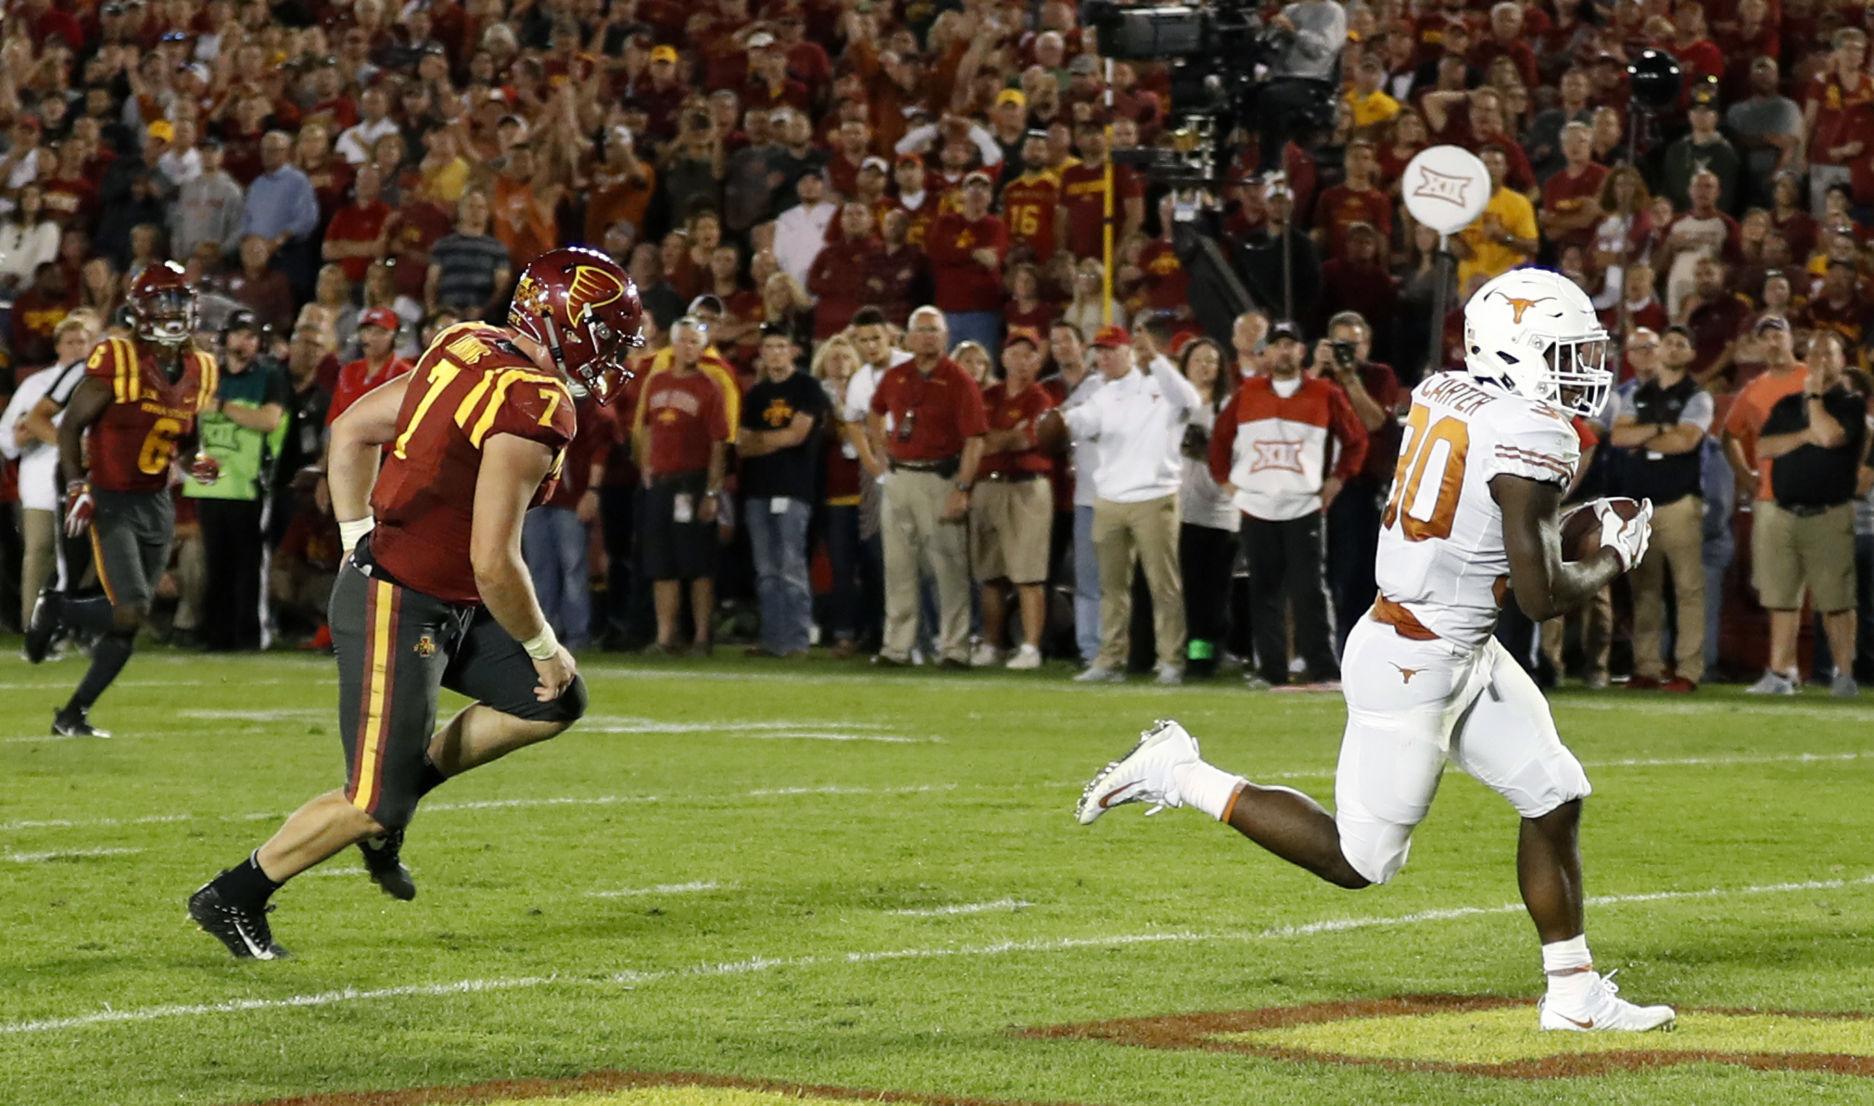 Longhorns beat Iowa State Cyclones in Ames, 17-7